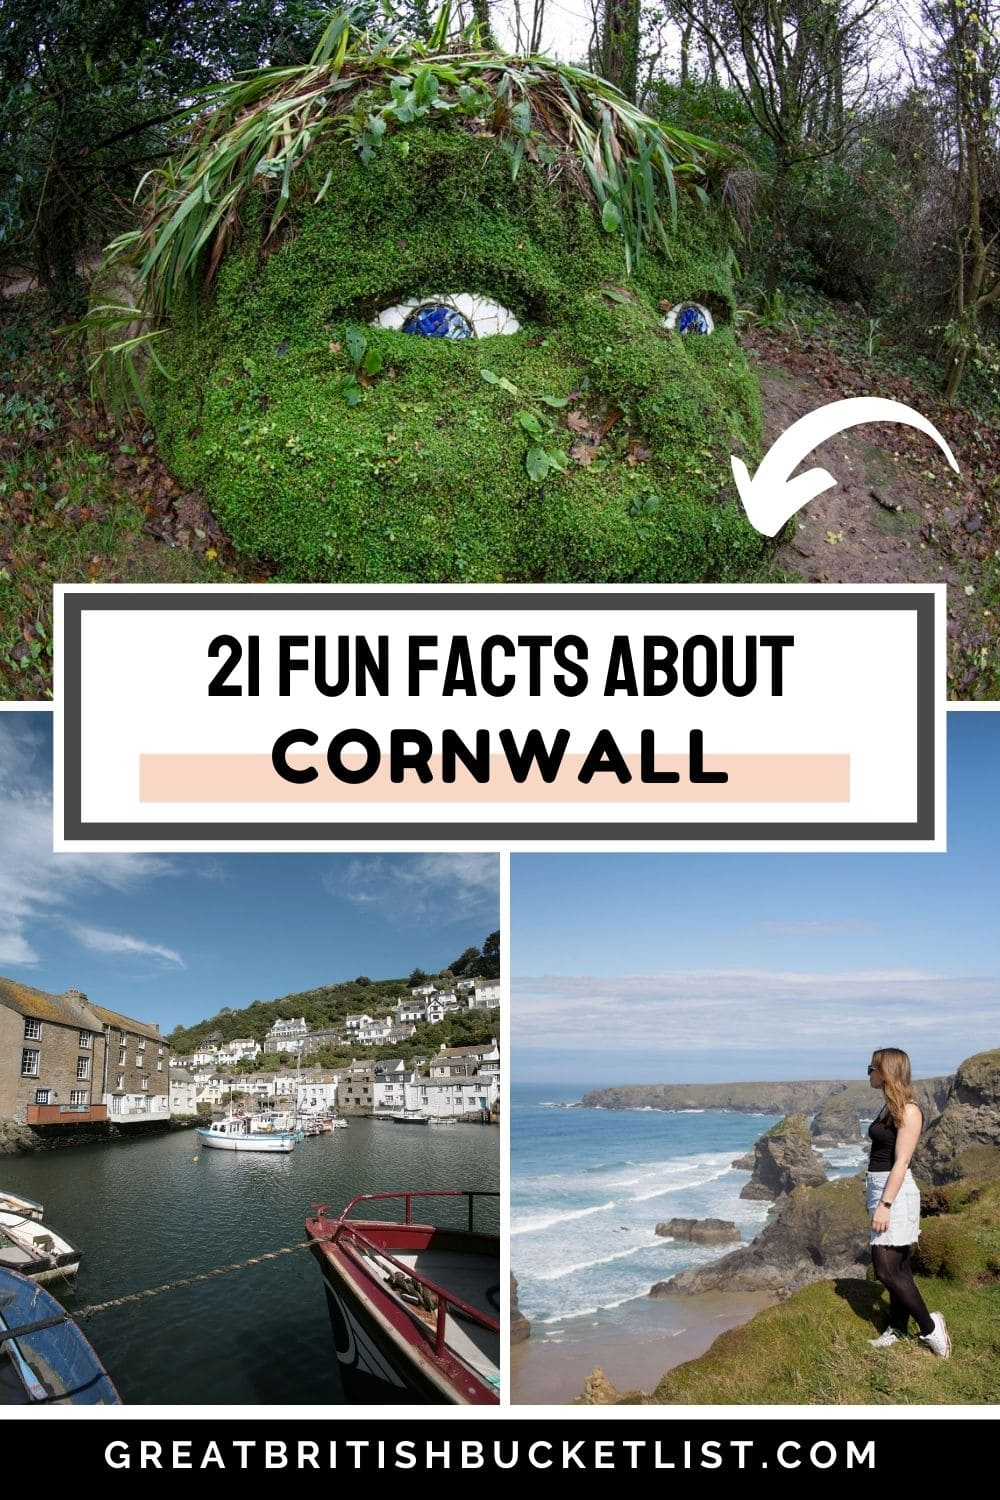 21 Fun Facts About Cornwall, England